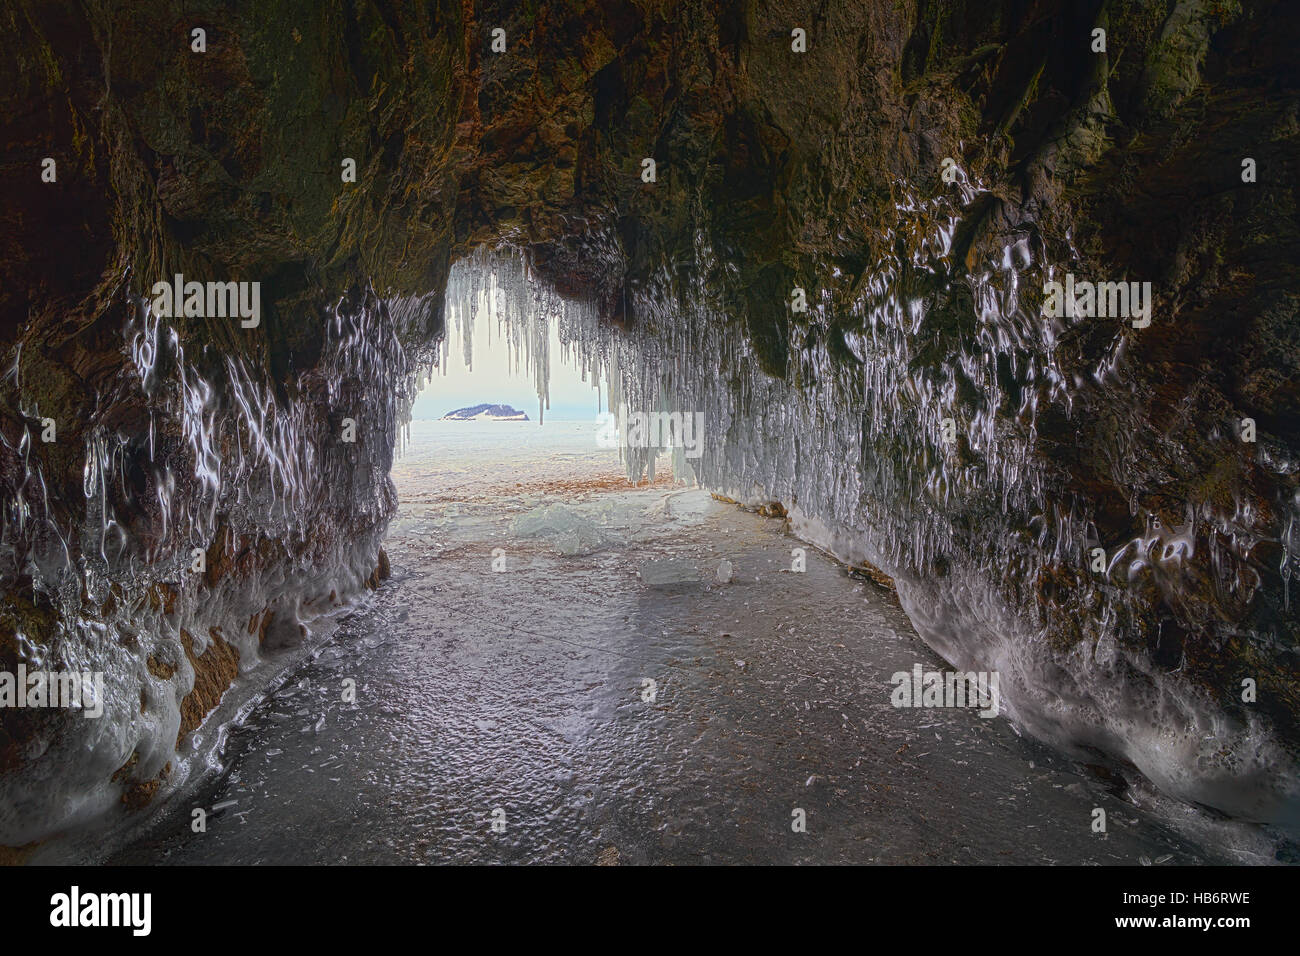 Curtain of icicles from the cave. - Stock Image